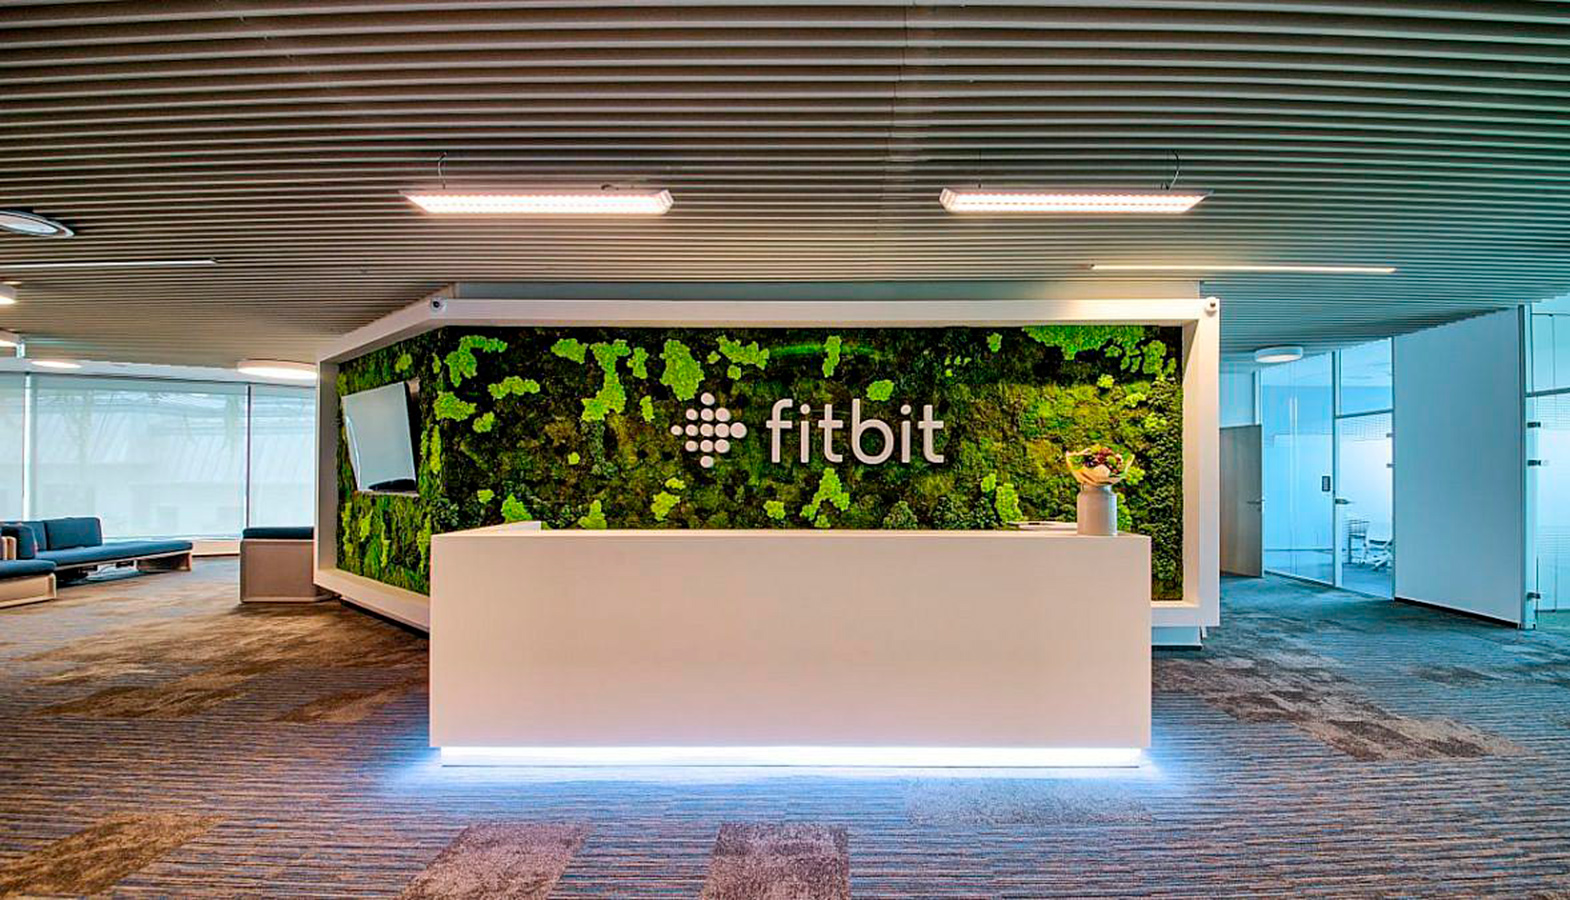 The European Commission Has Launched An Investigation Into Google's Intention To Acquire Fitbit